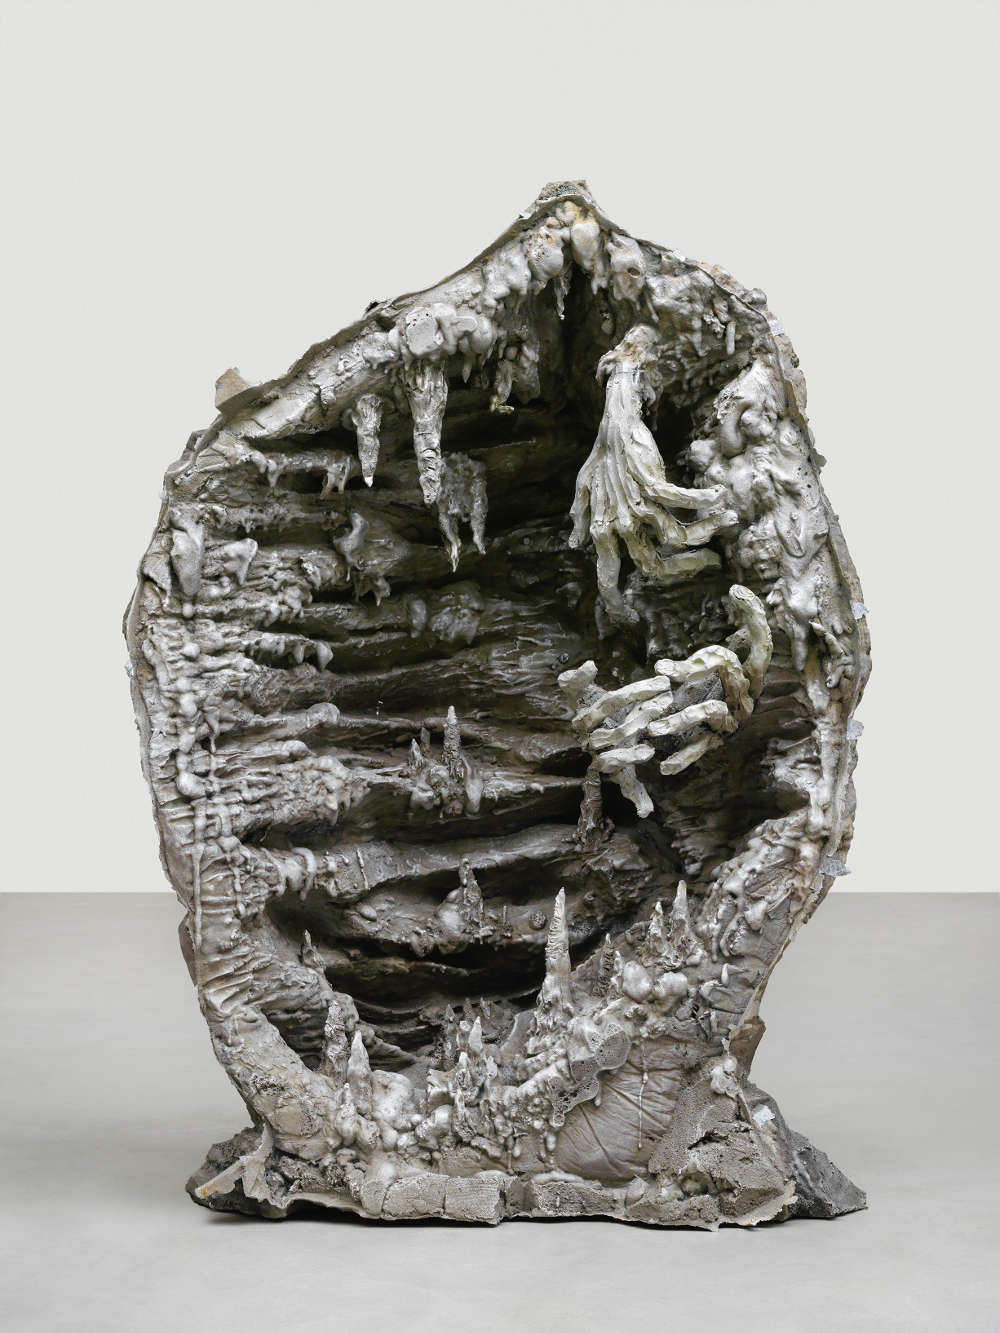 Jean-Marie Appriou, The cave of time (mythologique), 2018. Cast aluminum Circa 130 x 170 x 80 cm / 51 1/8 x 66 7/8 x 31 1/2 in © Jean-Marie Appriou. Courtesy the artist and Galerie Eva Presenhuber, Zurich / New York